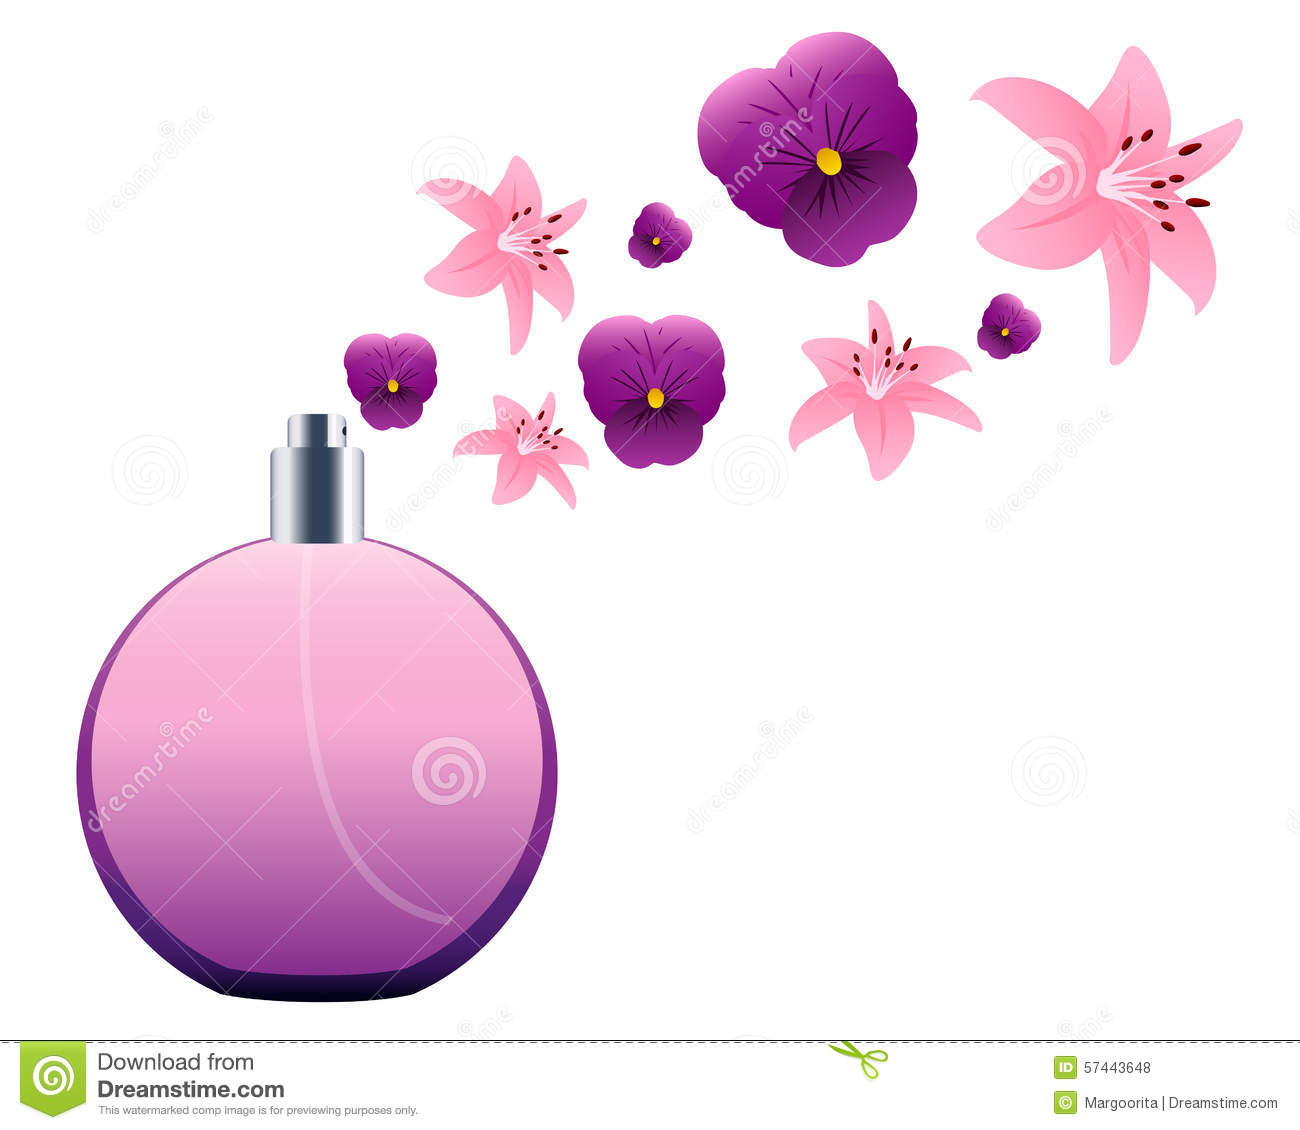 perfume bottle stock vector illustration of pink concept 57443648